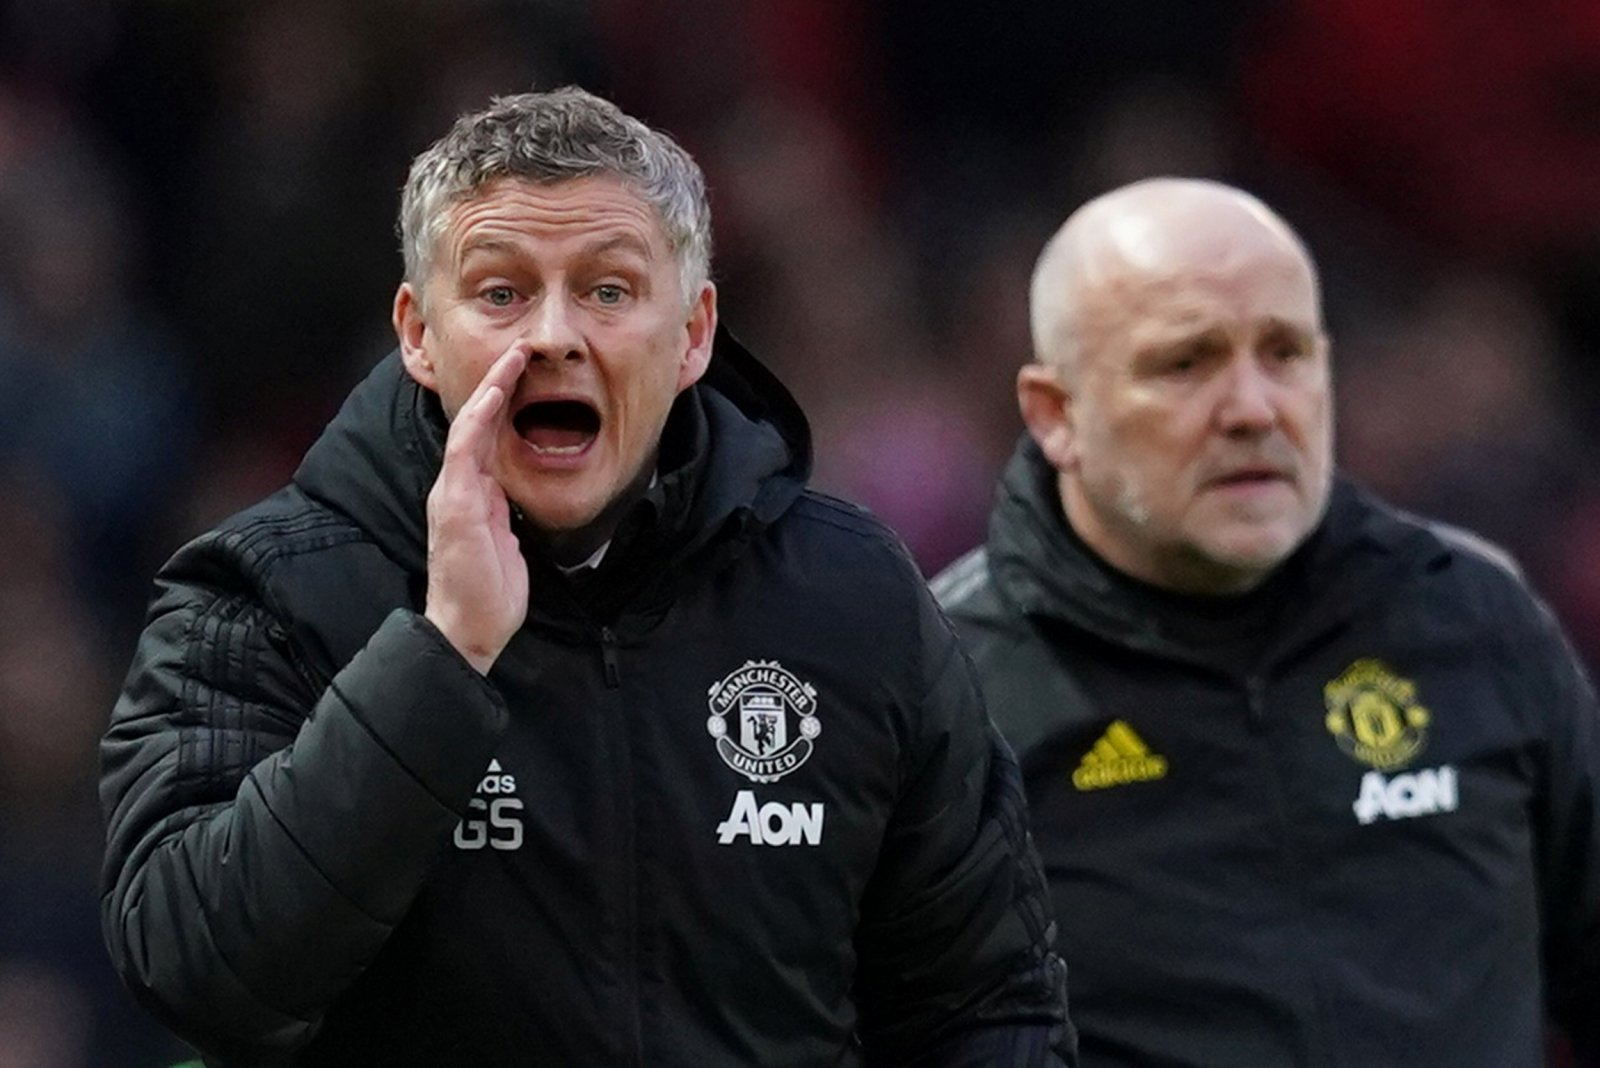 Manchester United: Fans thoroughly enjoyed seeing the aggressive side to Ole Gunnar Solskjaer's personality